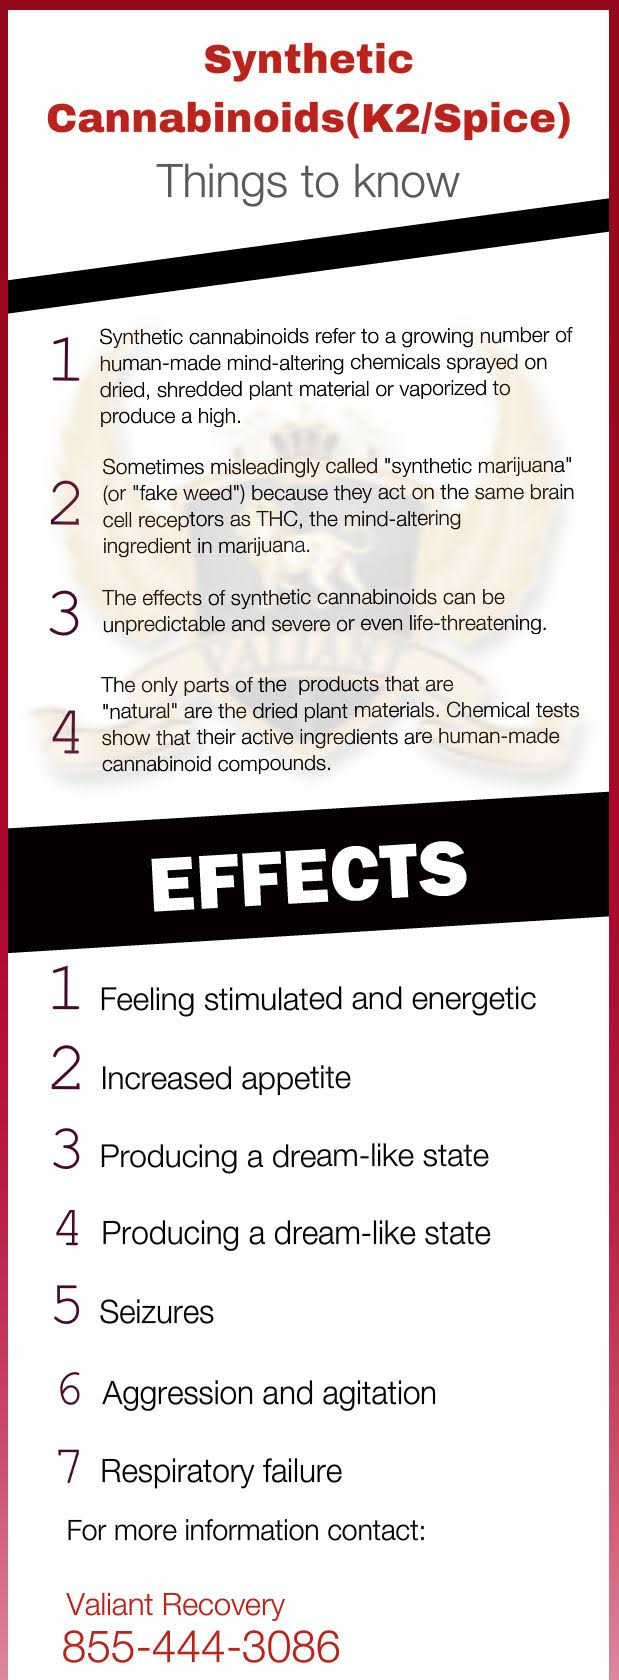 What is K2/Spice - Synthetic Cannabinoids - Infographic